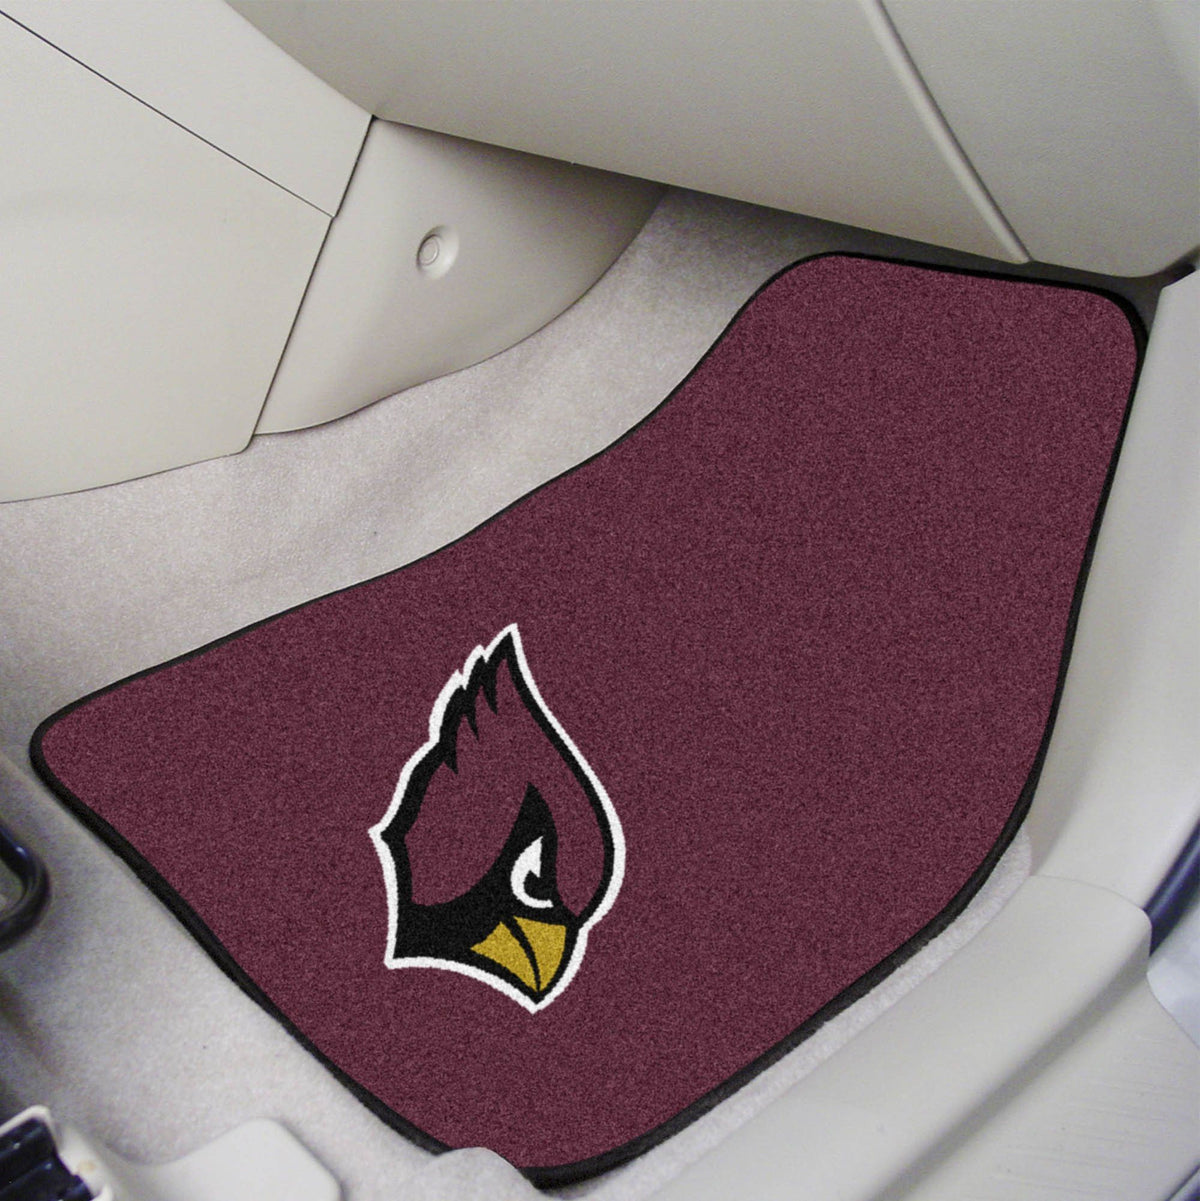 "NFL - 2-pc Carpet Car Mat Set, 17"" x 27"" NFL Mats, Front Car Mats, 2-pc Carpet Car Mat Set, NFL, Auto Fan Mats Arizona Cardinals"